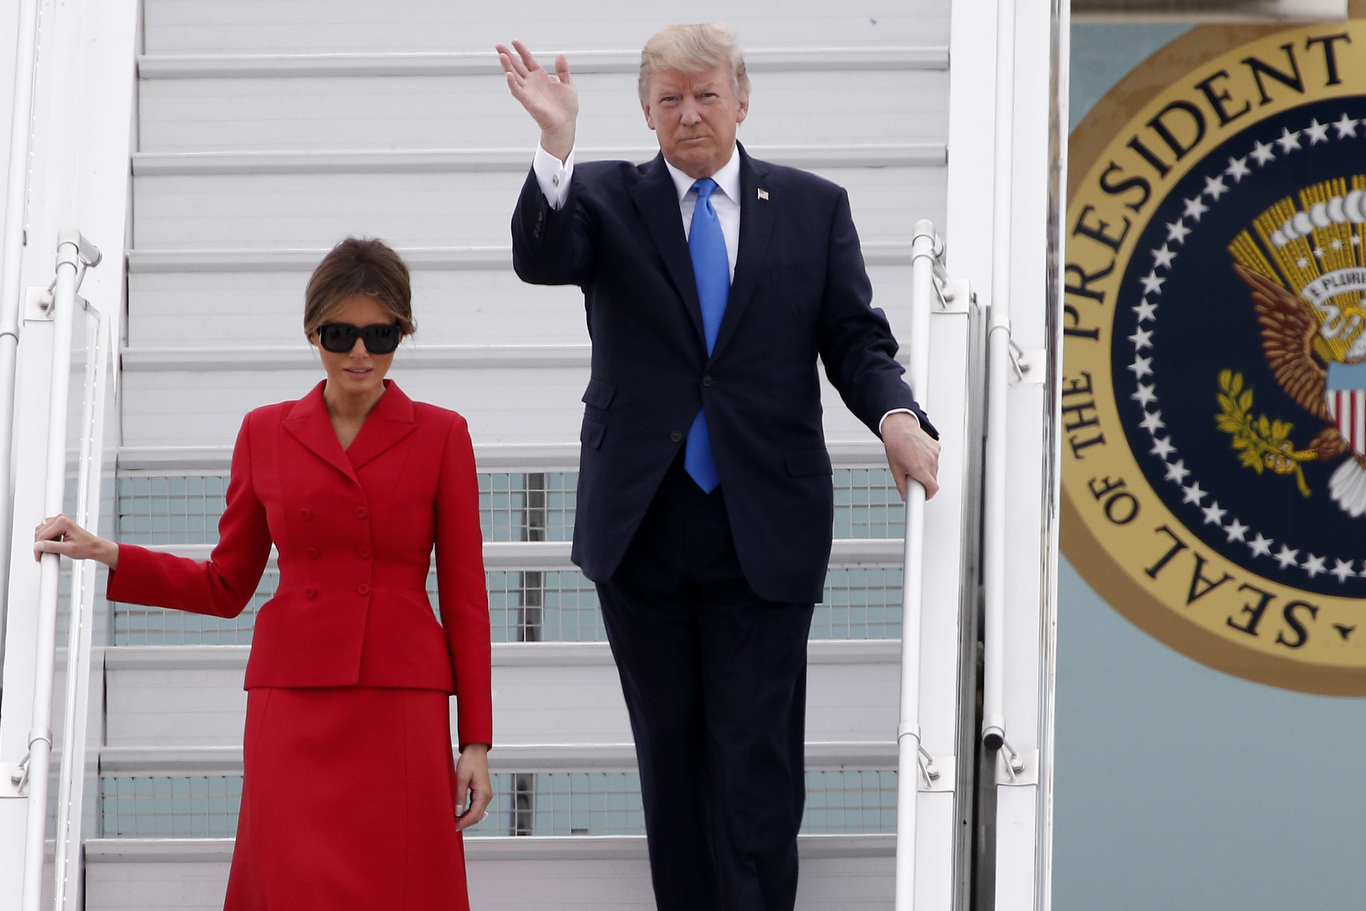 U.S President Donald Trump and First Lady Melania arrive at Orly airport, south of Paris, . Trump and his French counterpart, Emmanuel Macron, are looking to set aside differences on trade and climate change and find common ground as they meet ahead of Bastille Day celebrations in ParisTrump, Orly, France - 13 Jul 2017